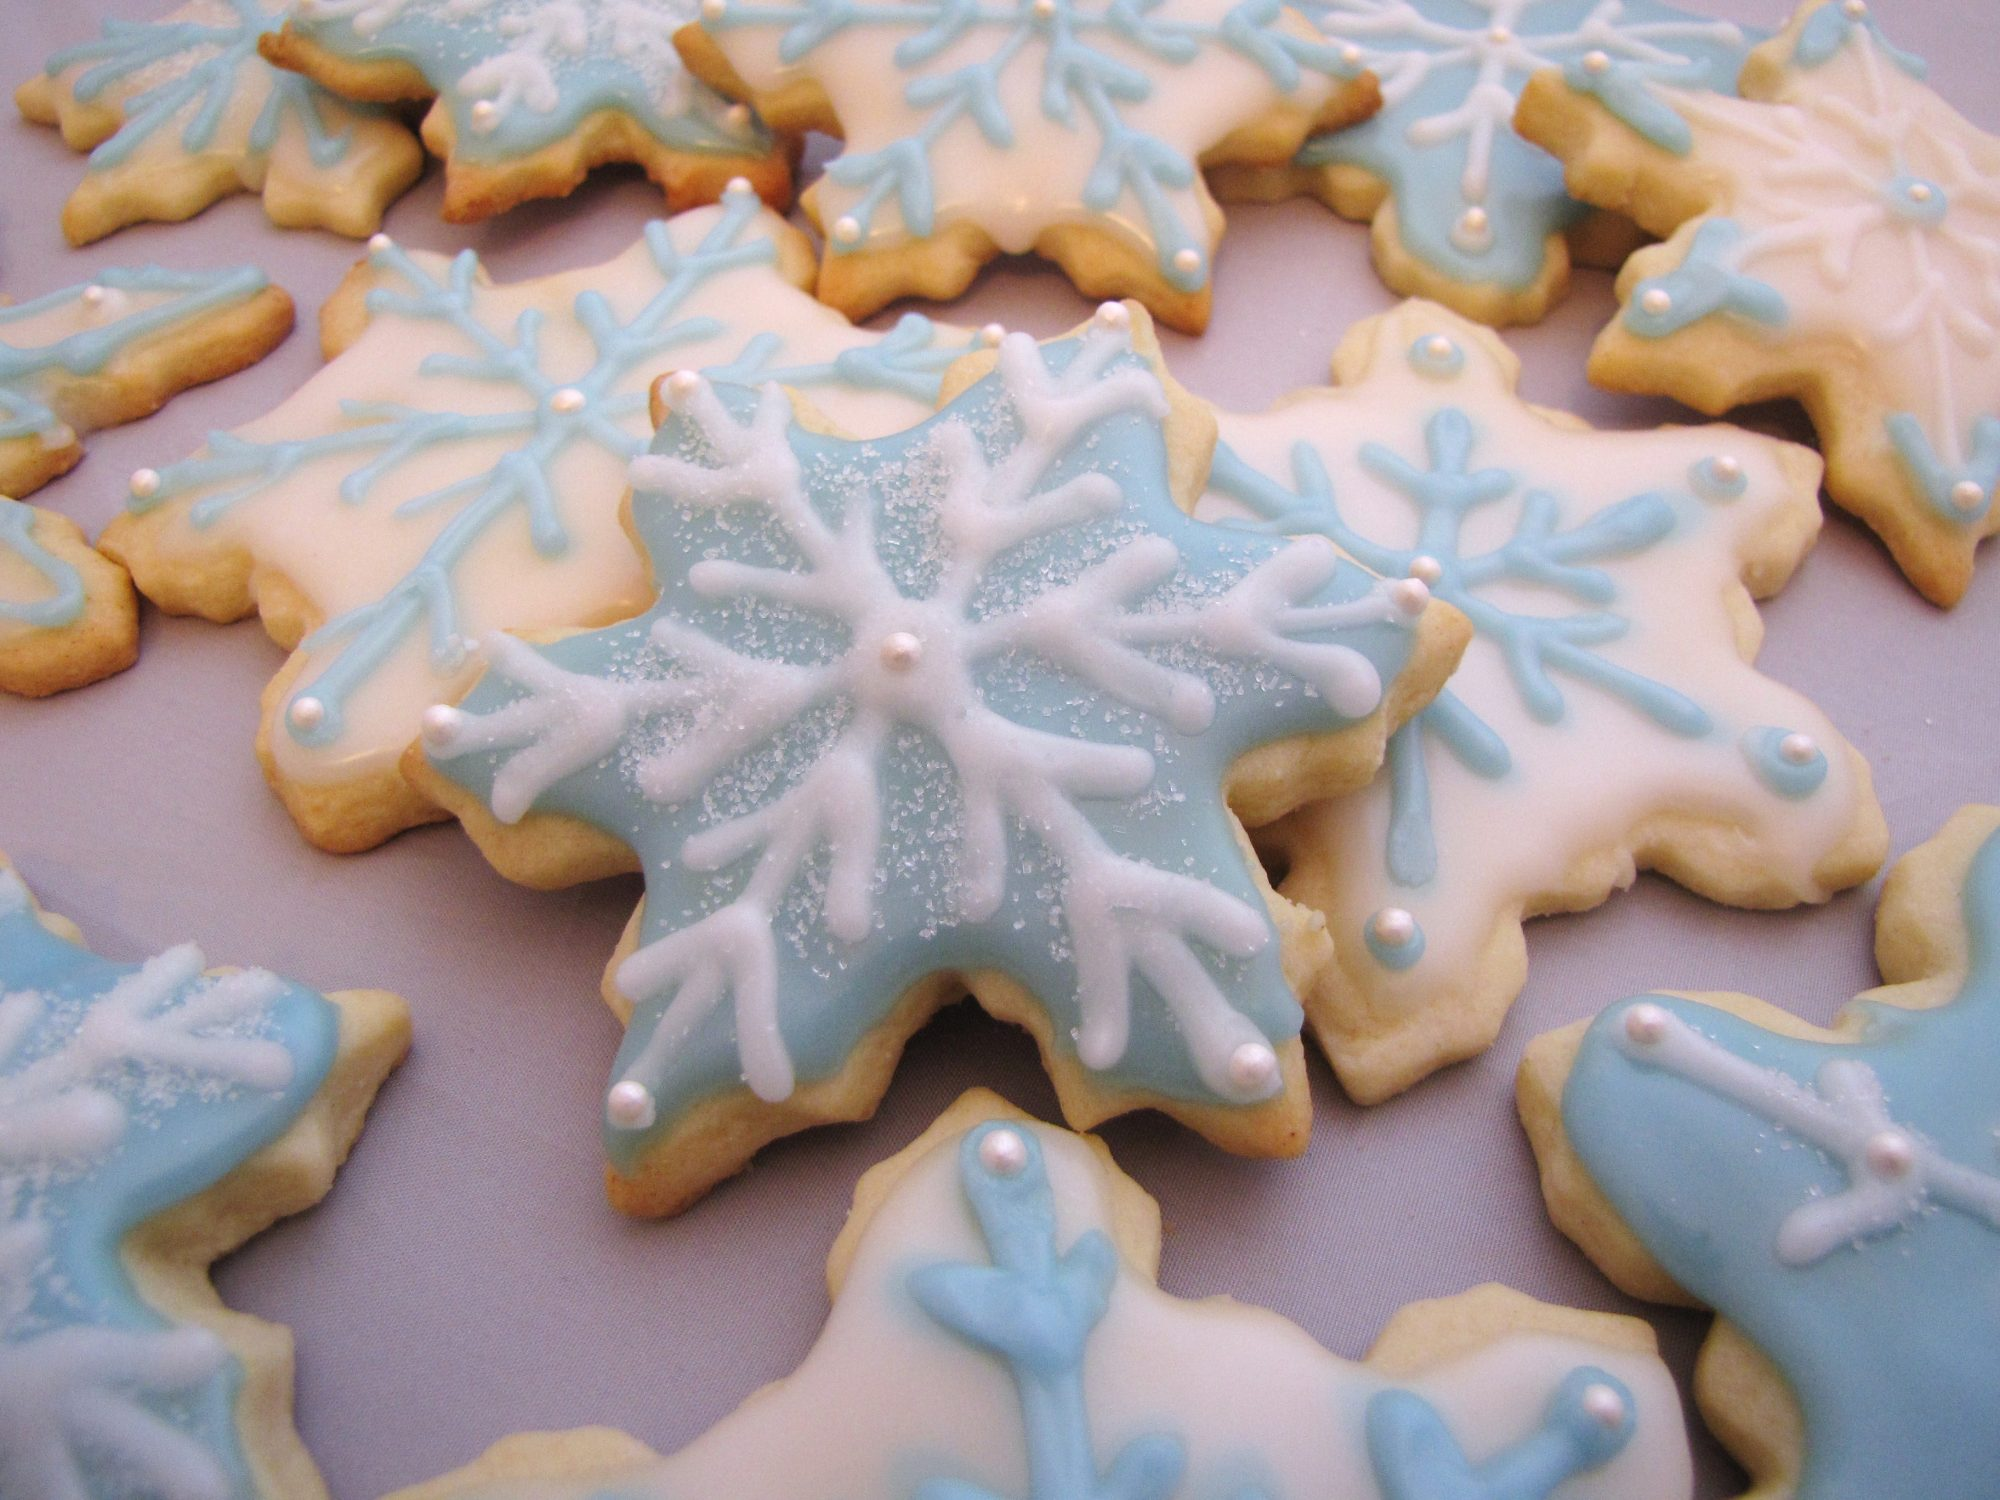 snowflake-shaped cookies decorated with pale blue and white icing